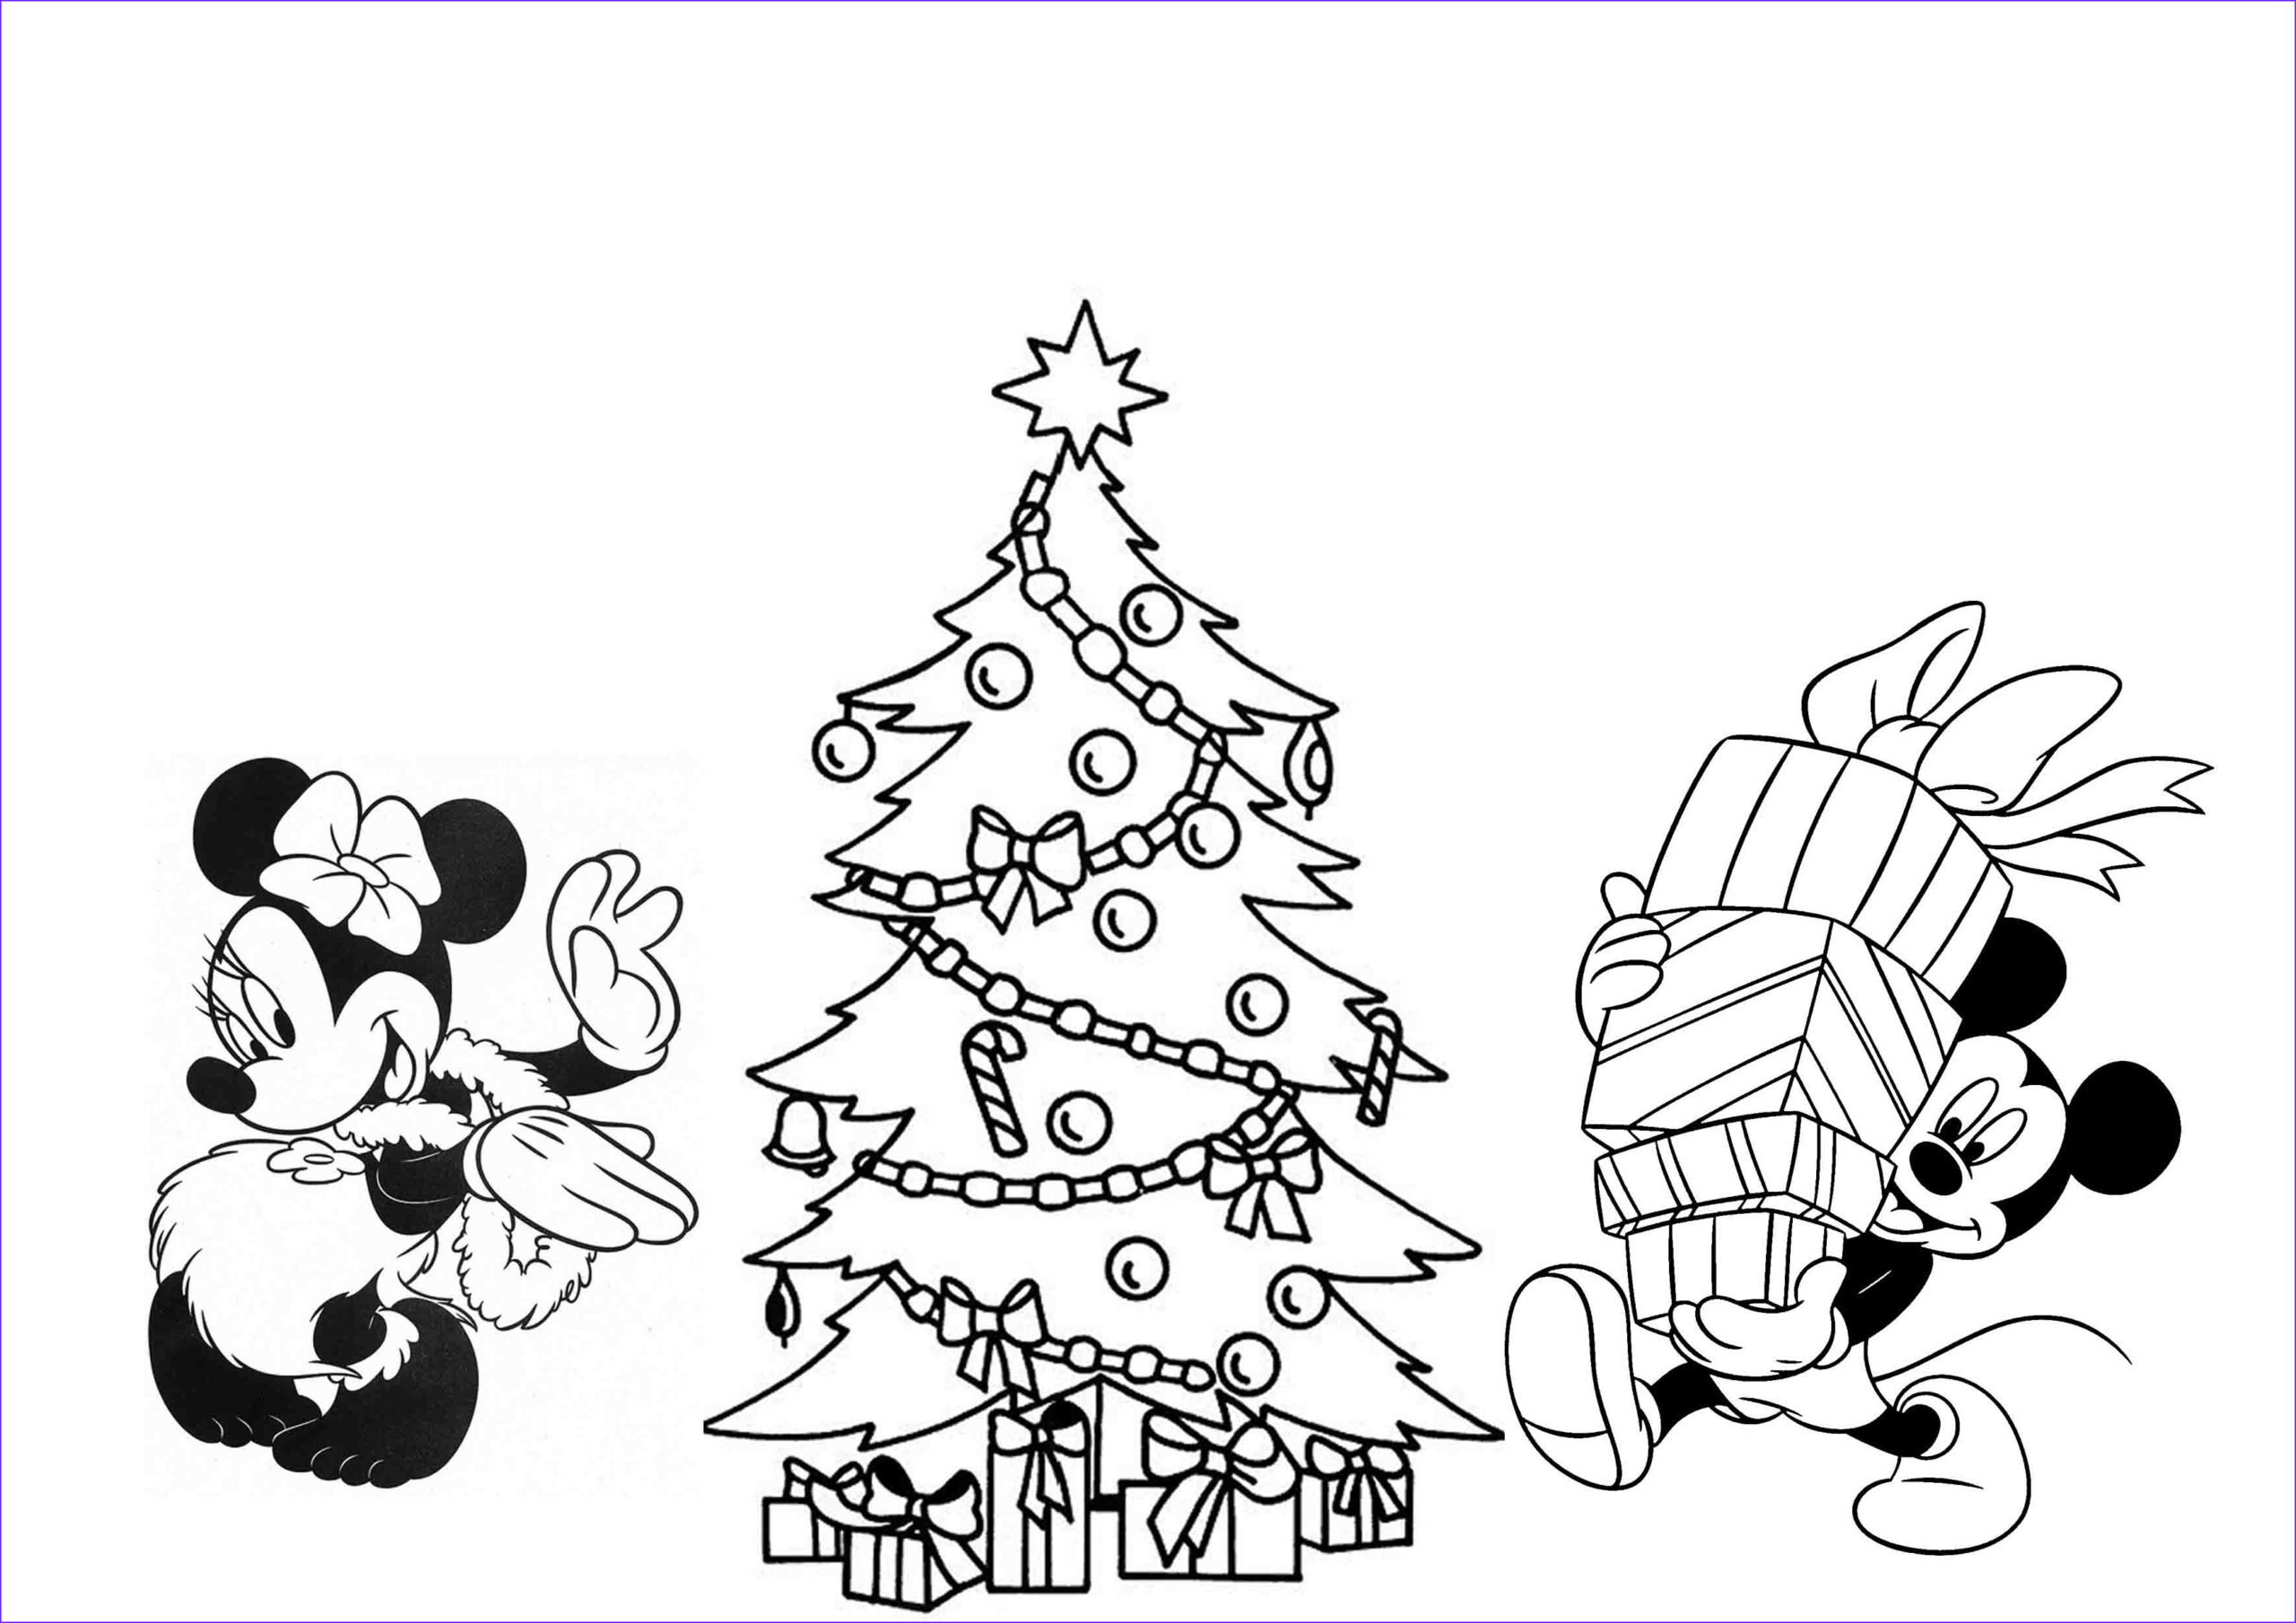 Coloring Pages Christmas Best Of Images Print & Download Printable Christmas Coloring Pages for Kids